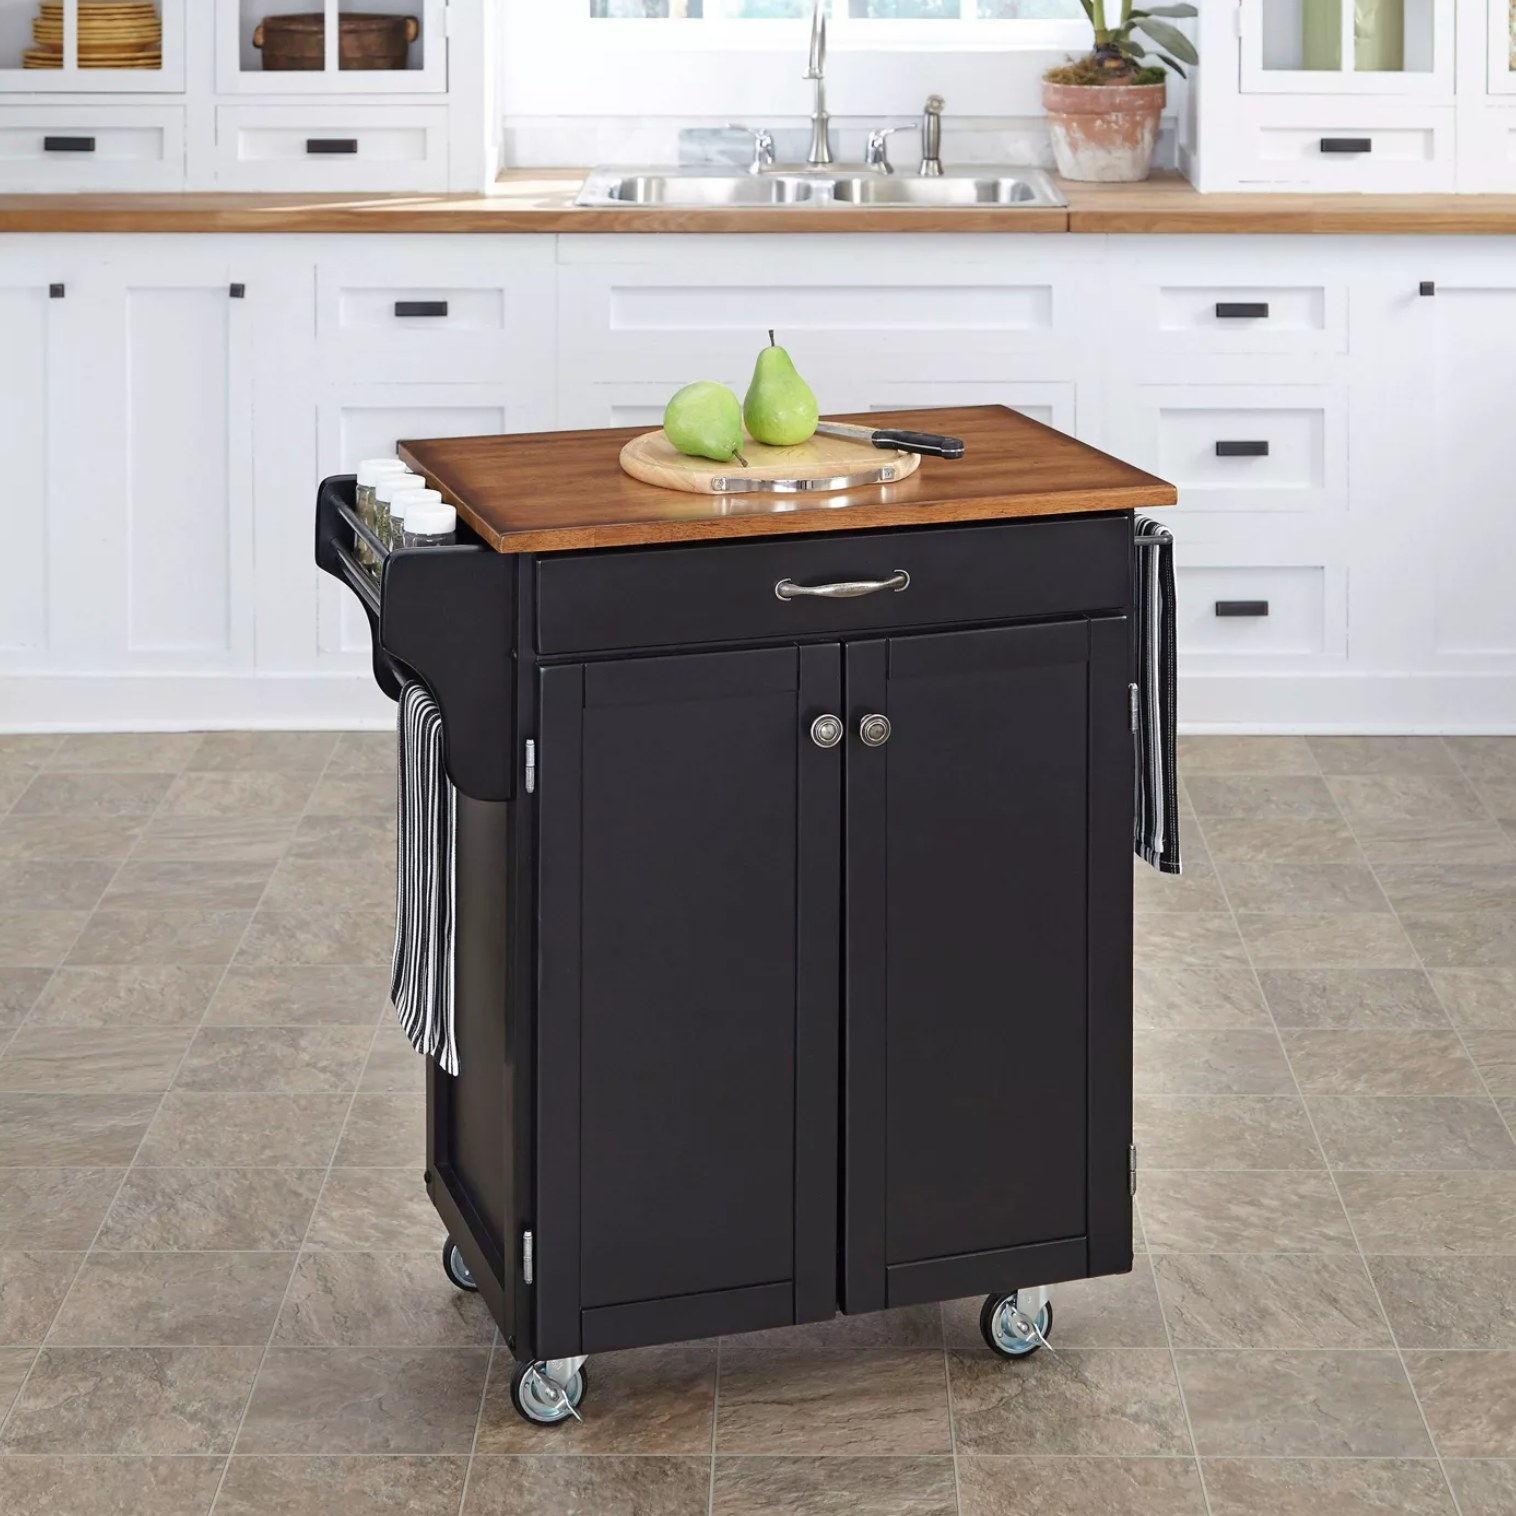 The cart in oak brown holding a cutting board and spices